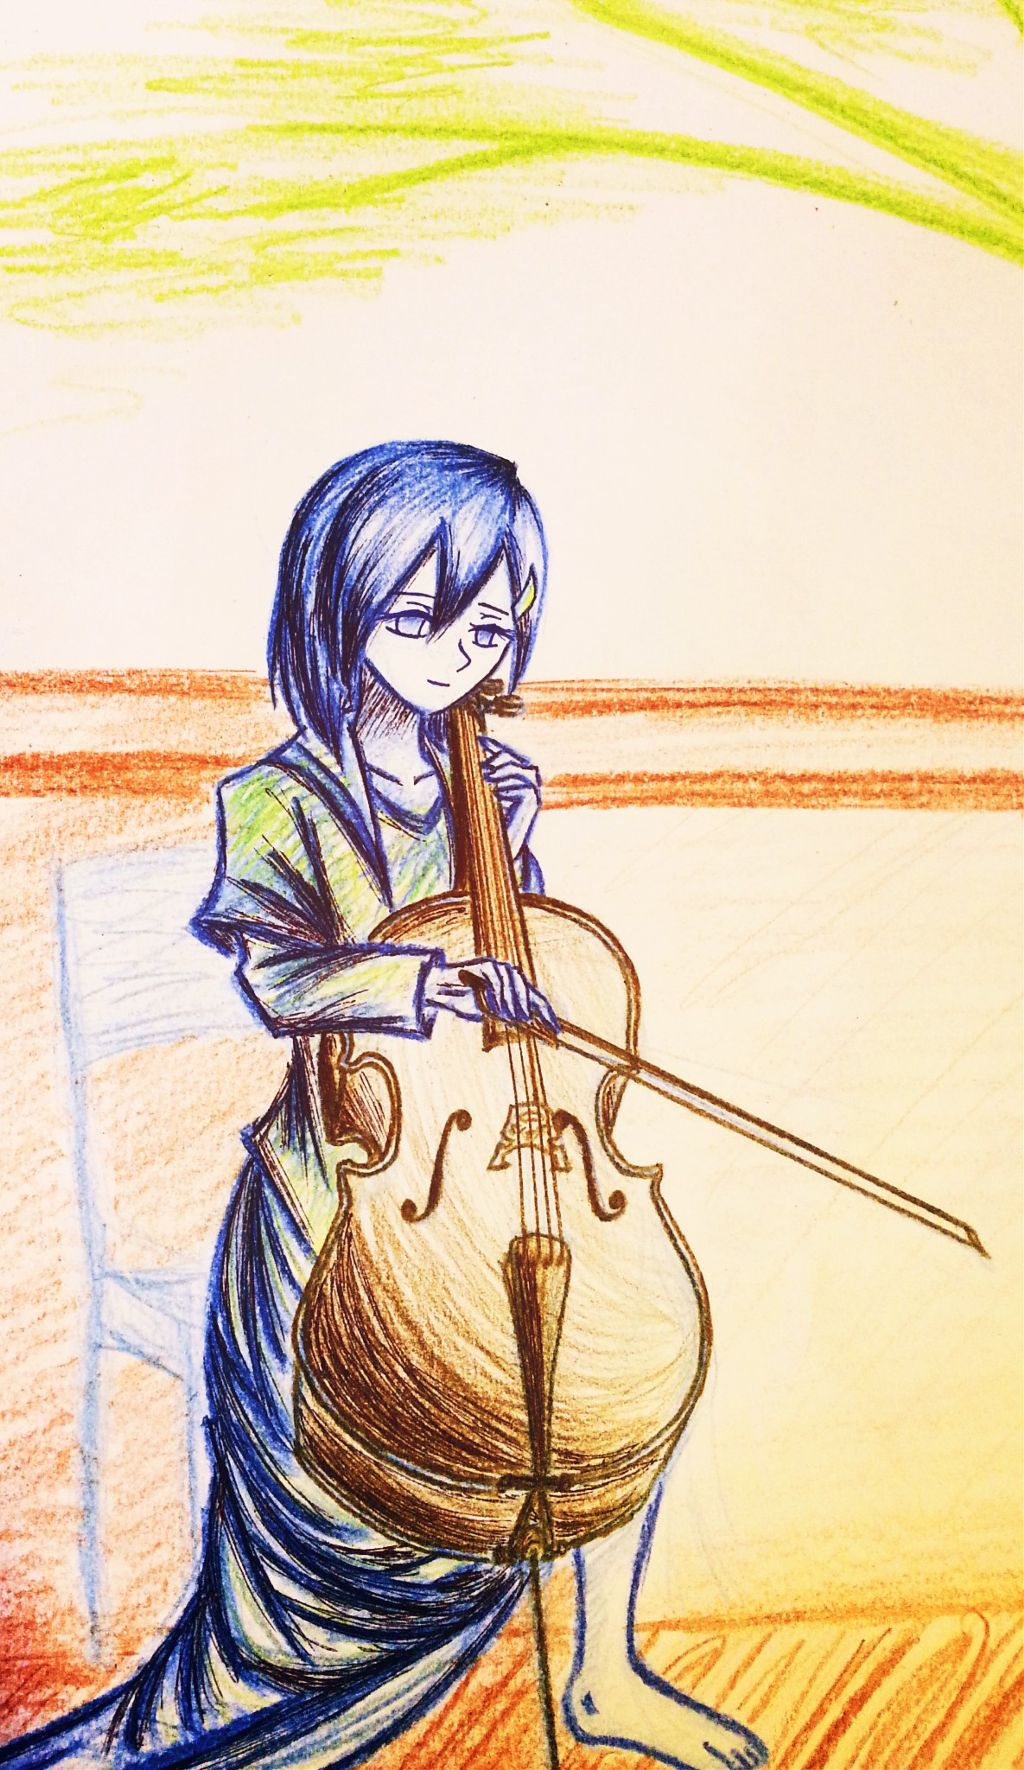 Girl with Cello Sorry i'm busy with school for the month :l . #colorful #emotions #pencilart #music #summer #vintage #retro #drawing #cello #original  #design